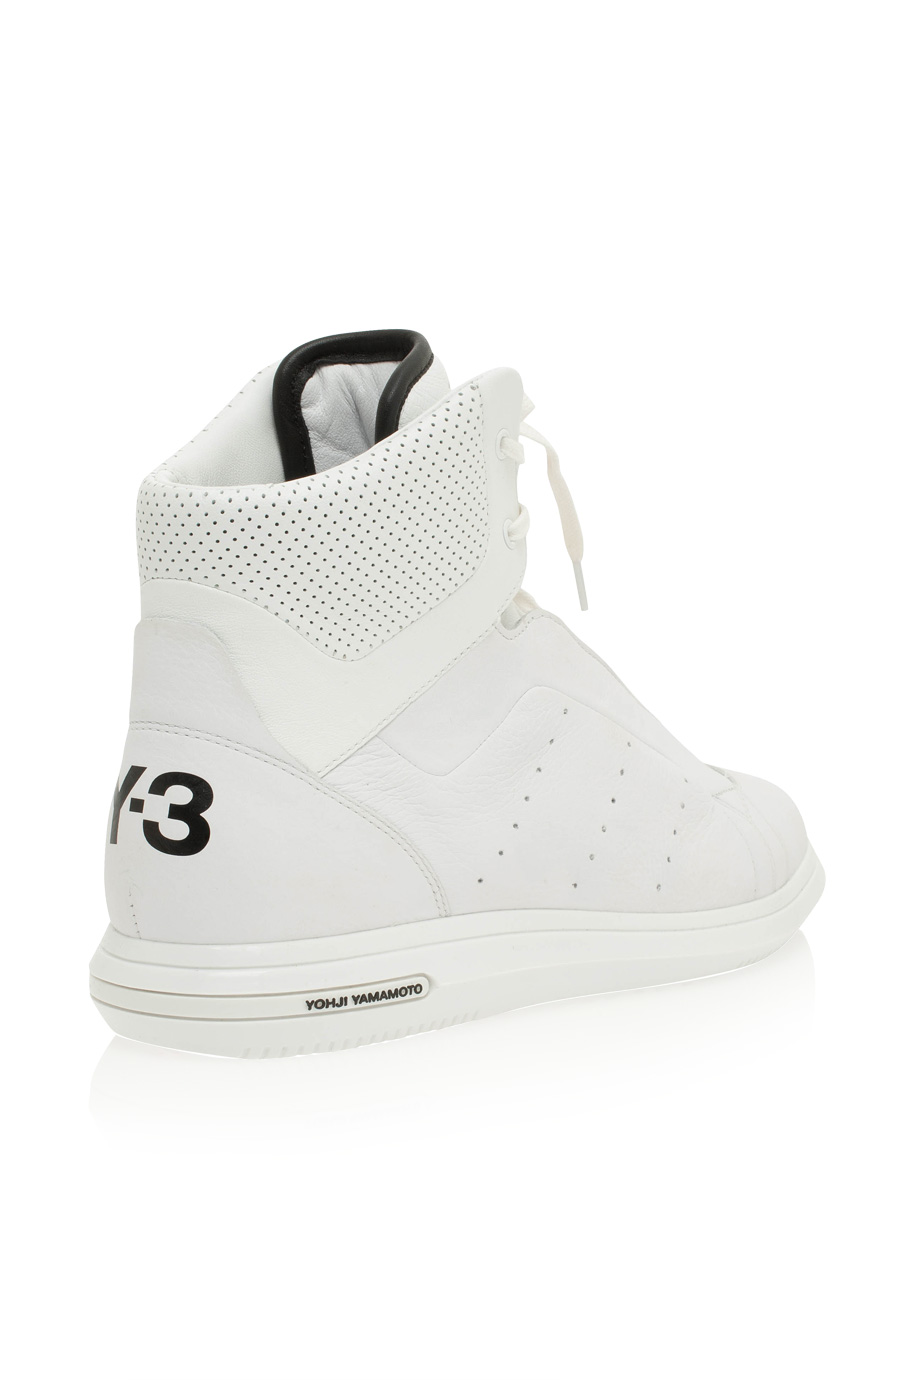 Lyst - Y-3 Rade High Shoes in White for Men 8eb2d159f096